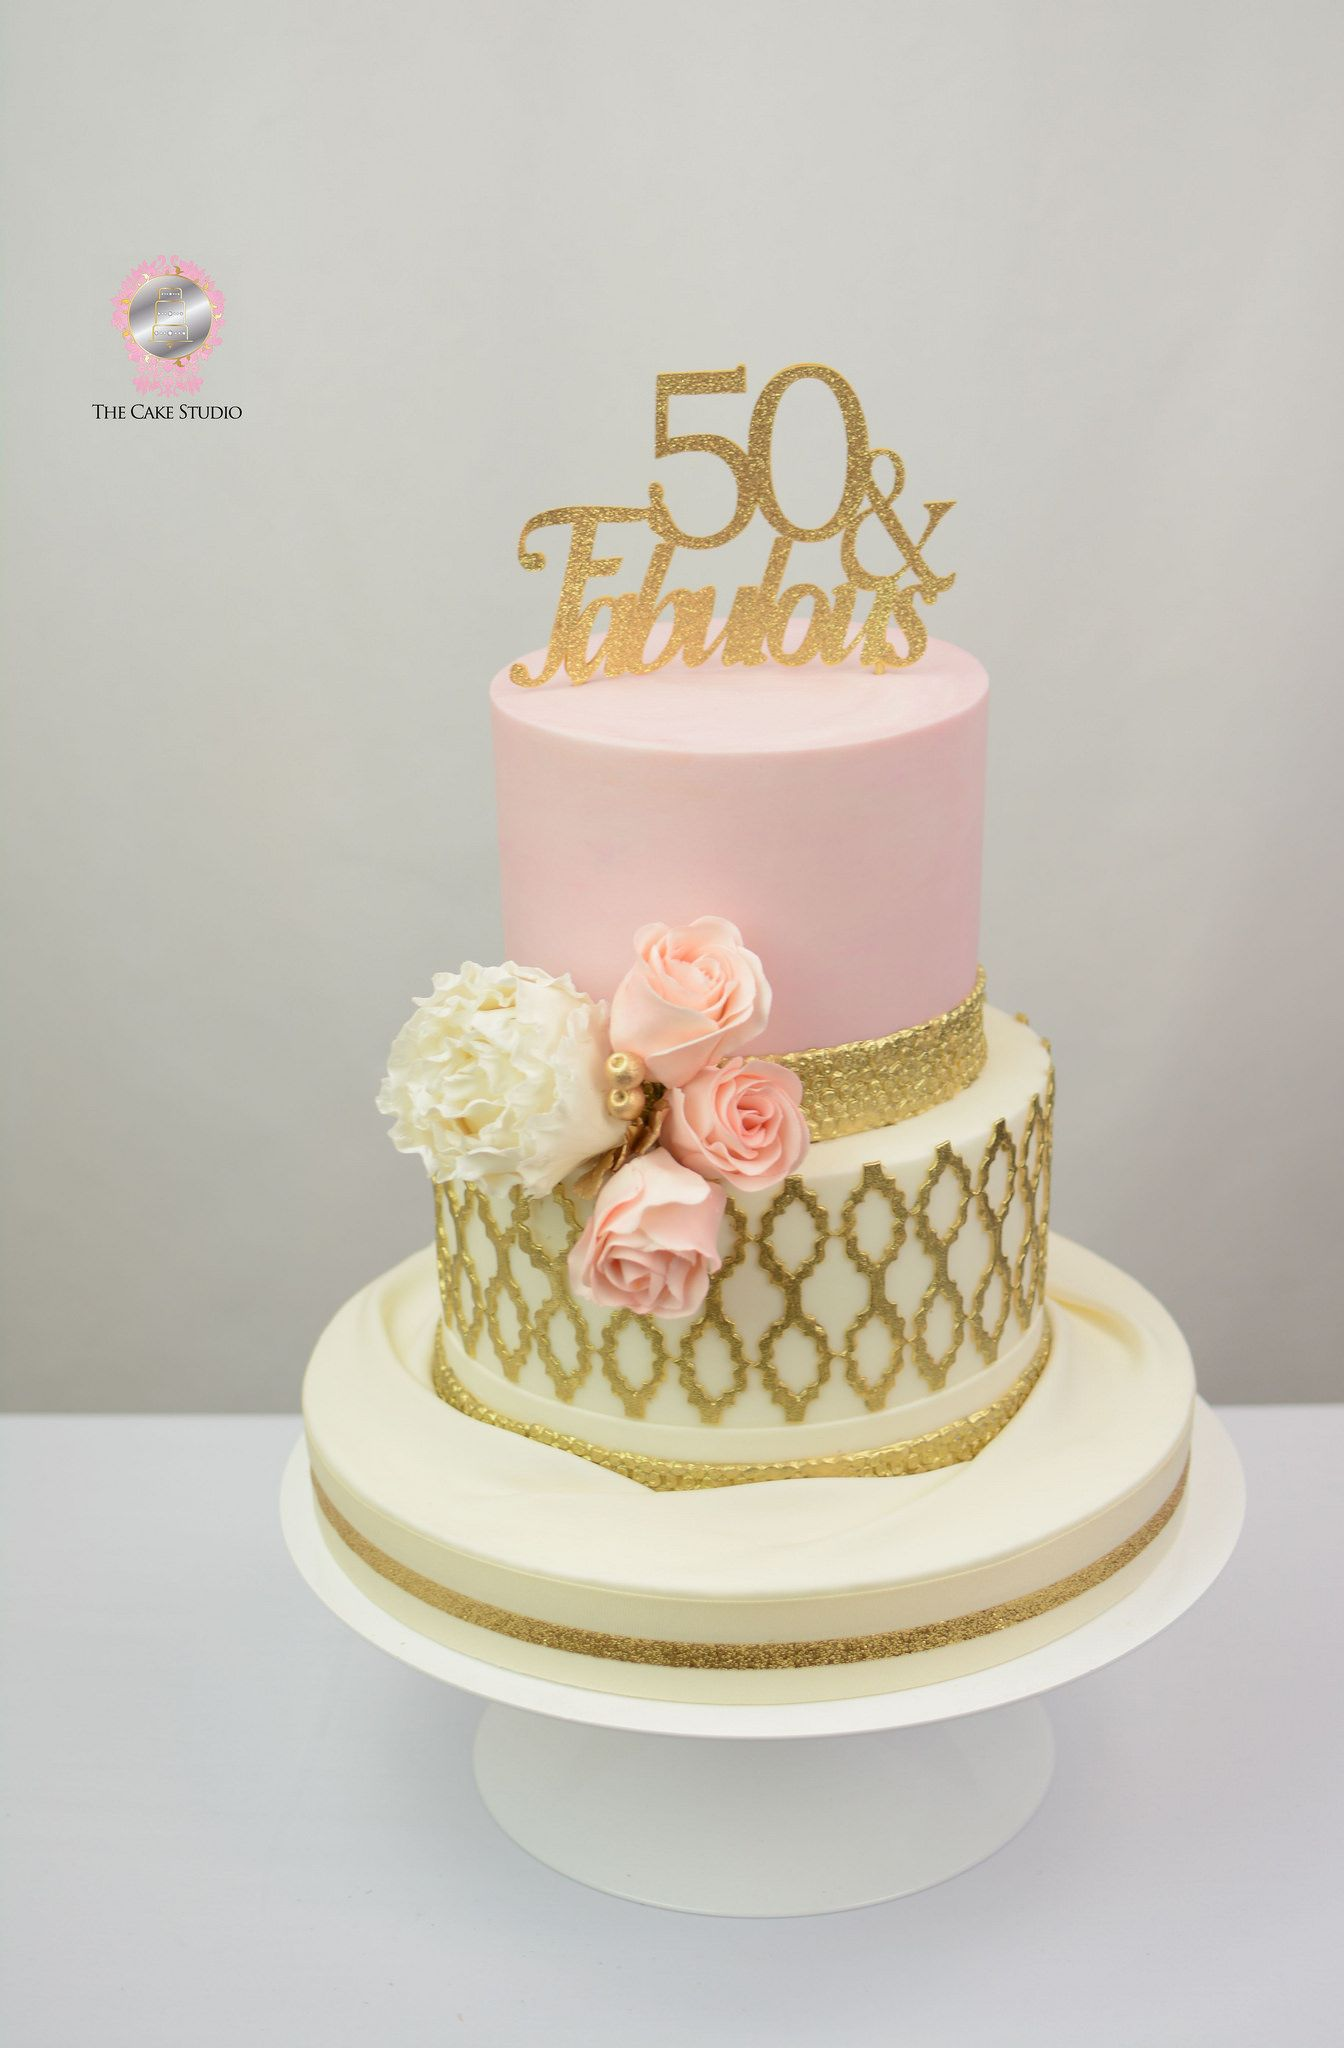 Pin On Weddings And Events